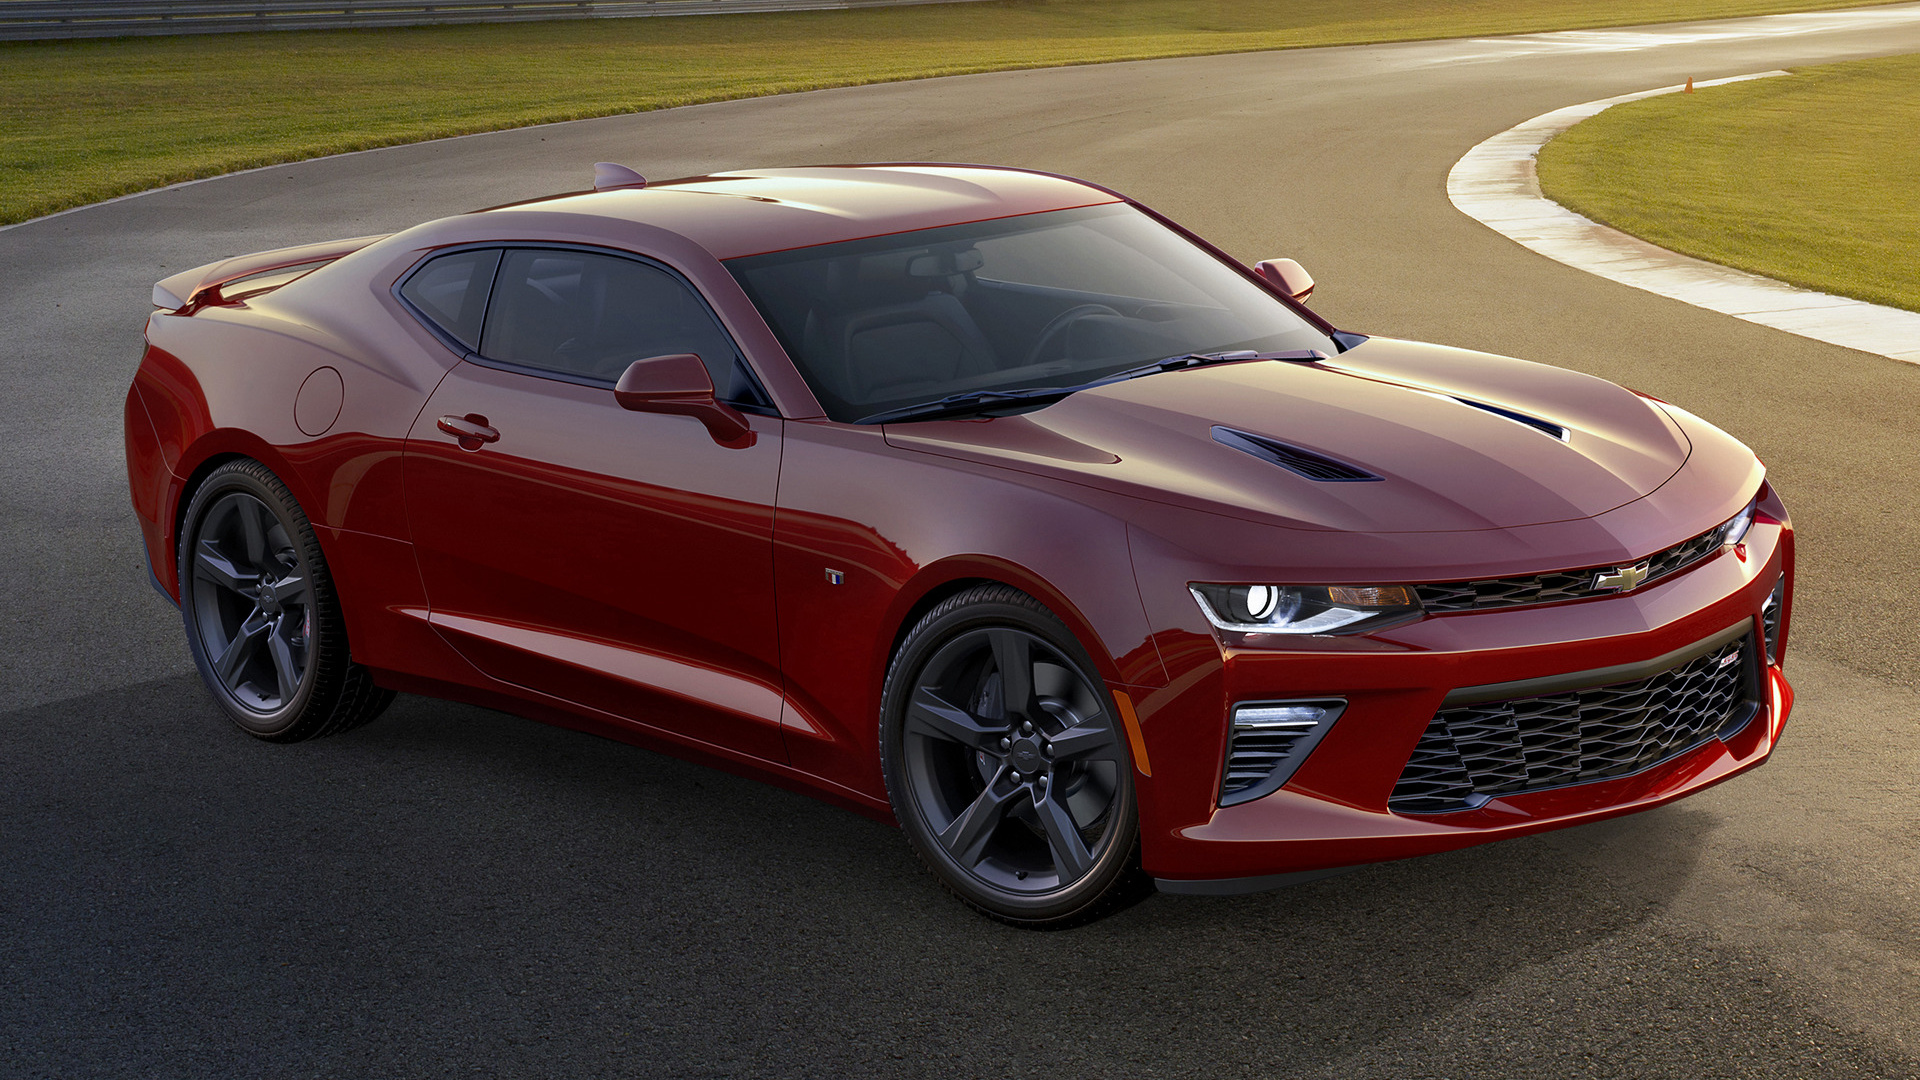 Chevrolet Camaro SS 2016 Wallpapers and HD Images   Car 1920x1080